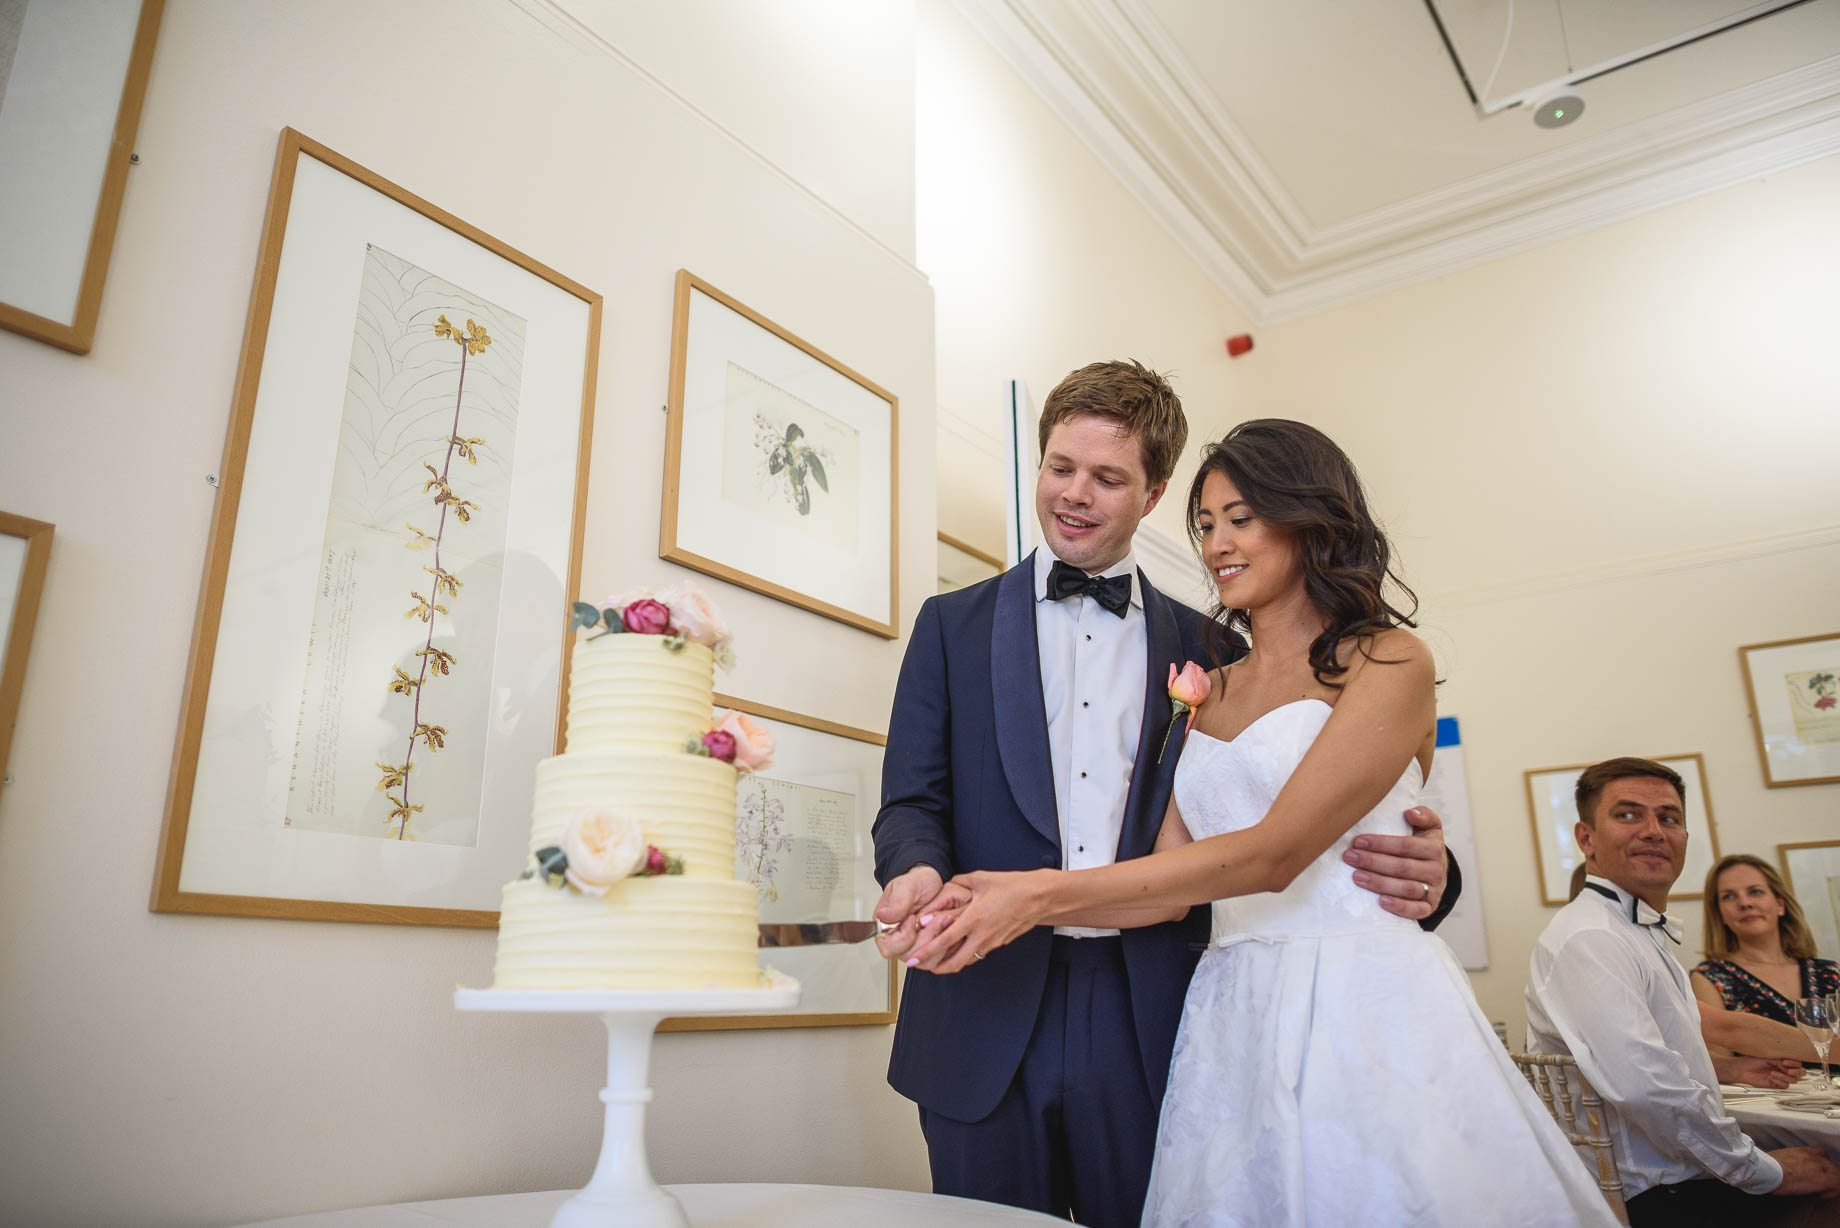 Kew Gardens wedding photography - Guy Collier Photography - Gloria and Frederik (109 of 173)